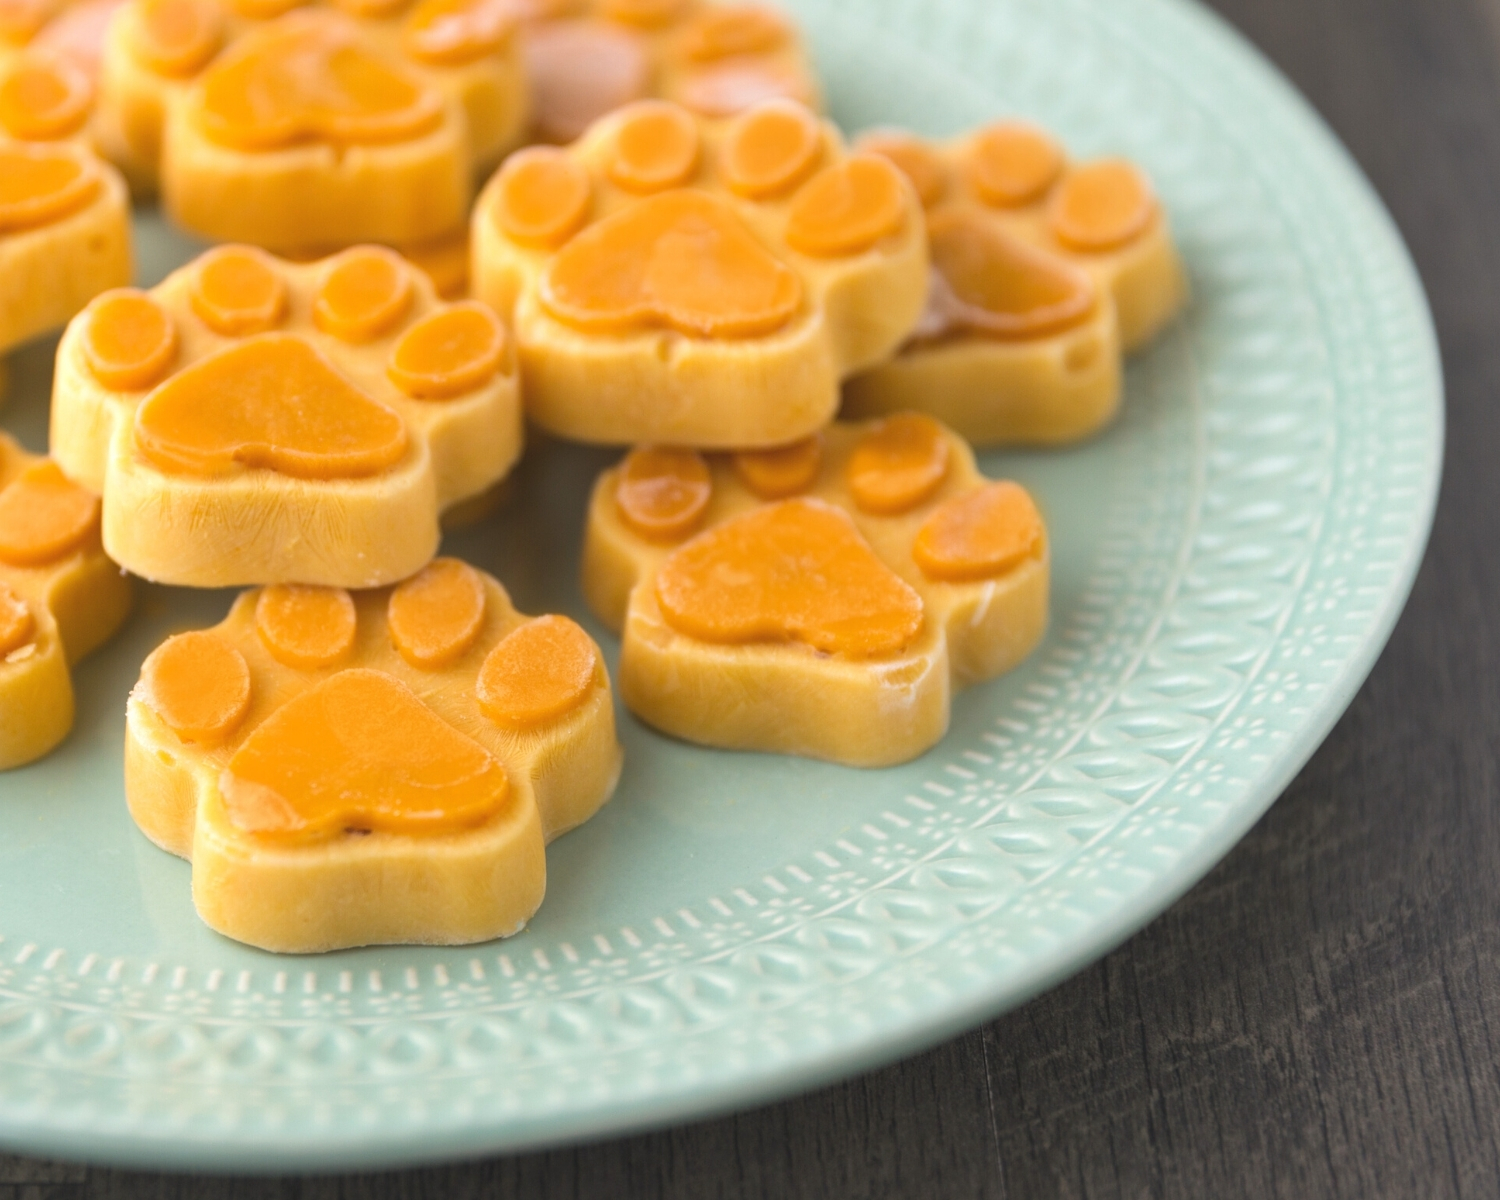 Cool Treats for Hot Dogs: Treats to keep your pup cool 1